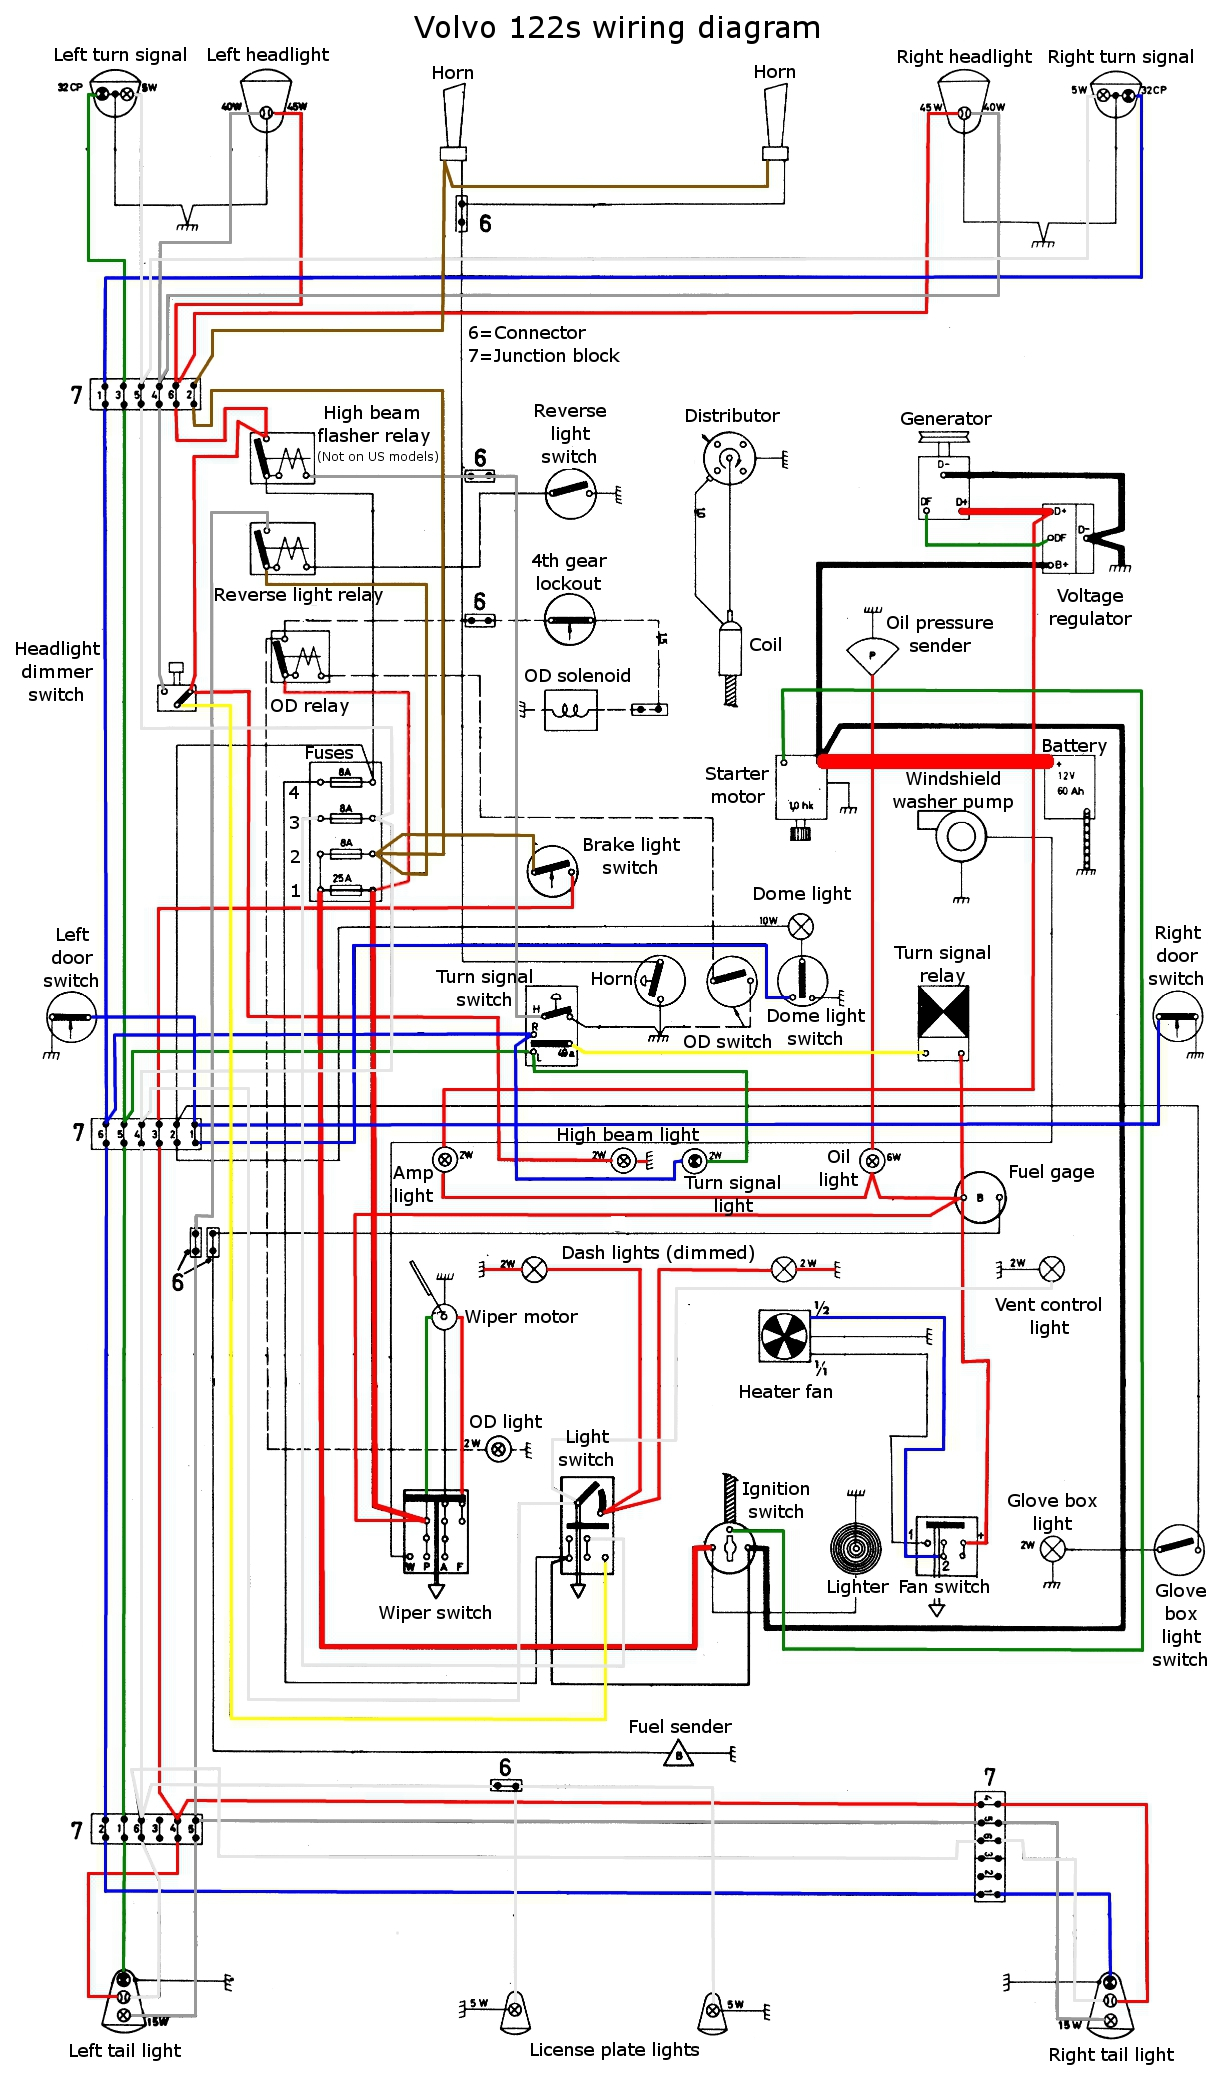 122 wiring diagram color wiring gremlins volvo xc70 wiring diagram at metegol.co